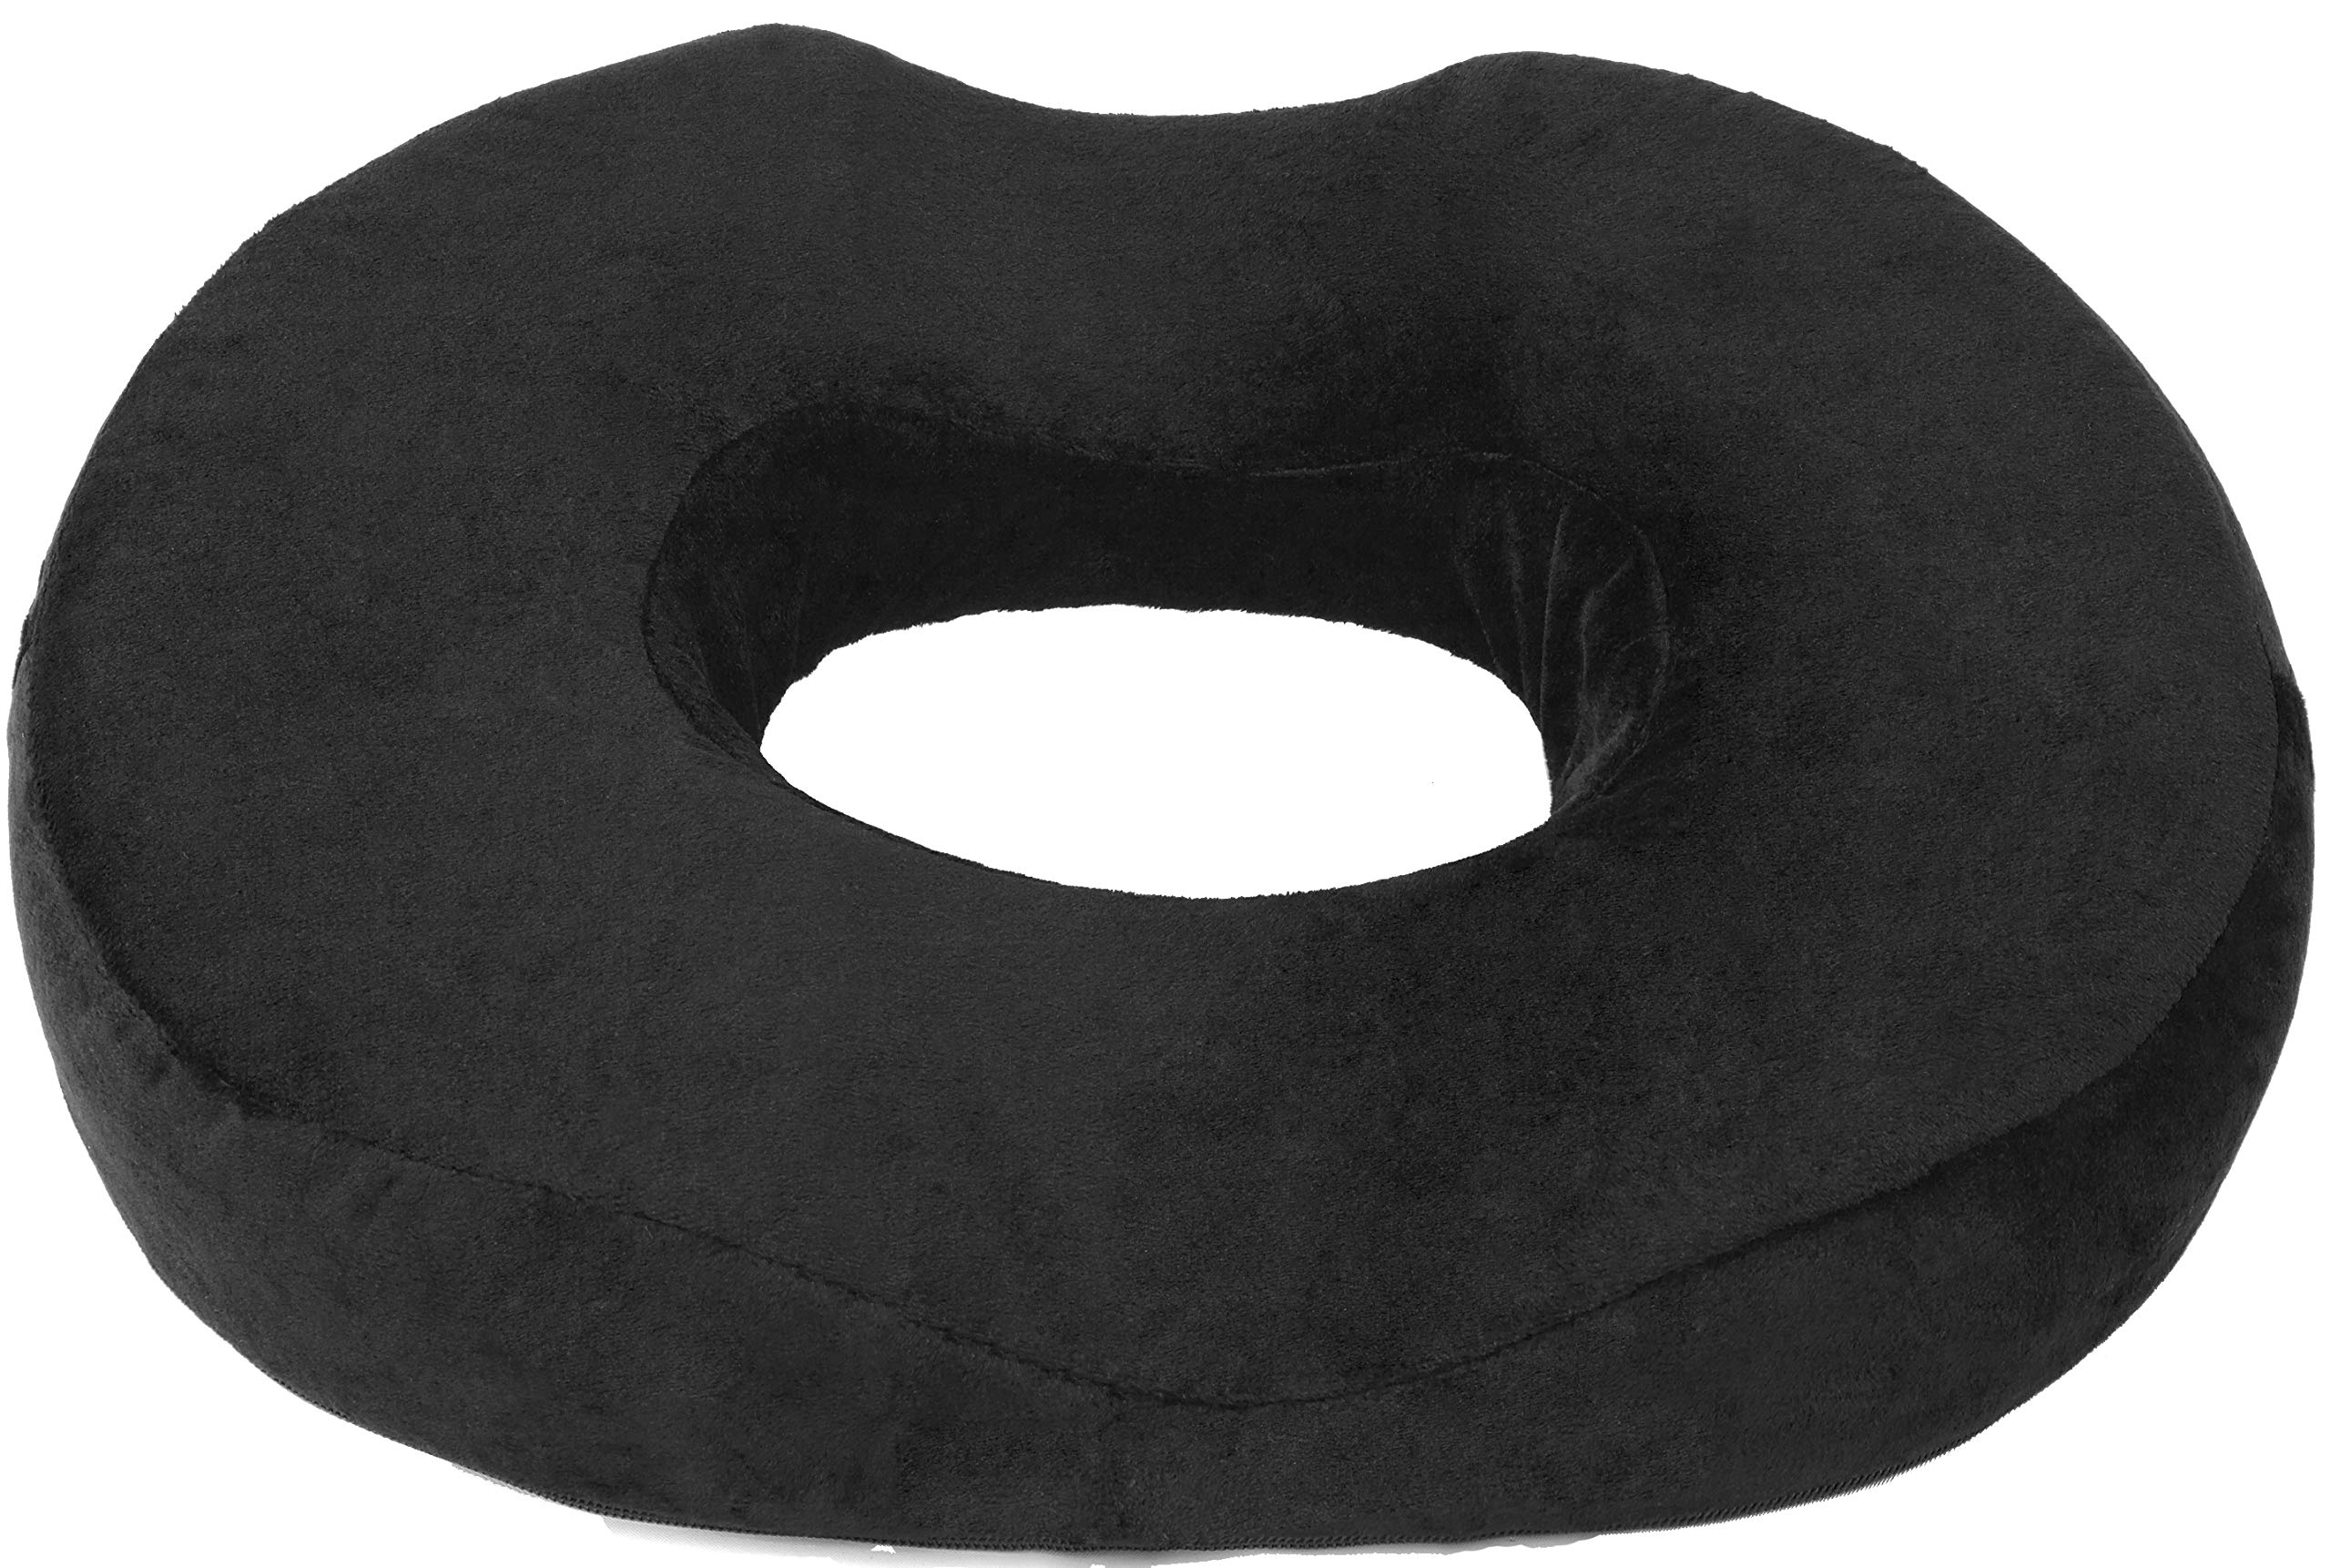 Donut Pillow Seat Cushion Orthopedic Design| Tailbone & Coccyx Memory Foam Pillow | Pain Relief for Hemorrhoid, Pregnancy Post Natal, Surgery, Sciatica and Relieves Tailbone Pressure by Pillow Palace  by Lexia Donut Pillow